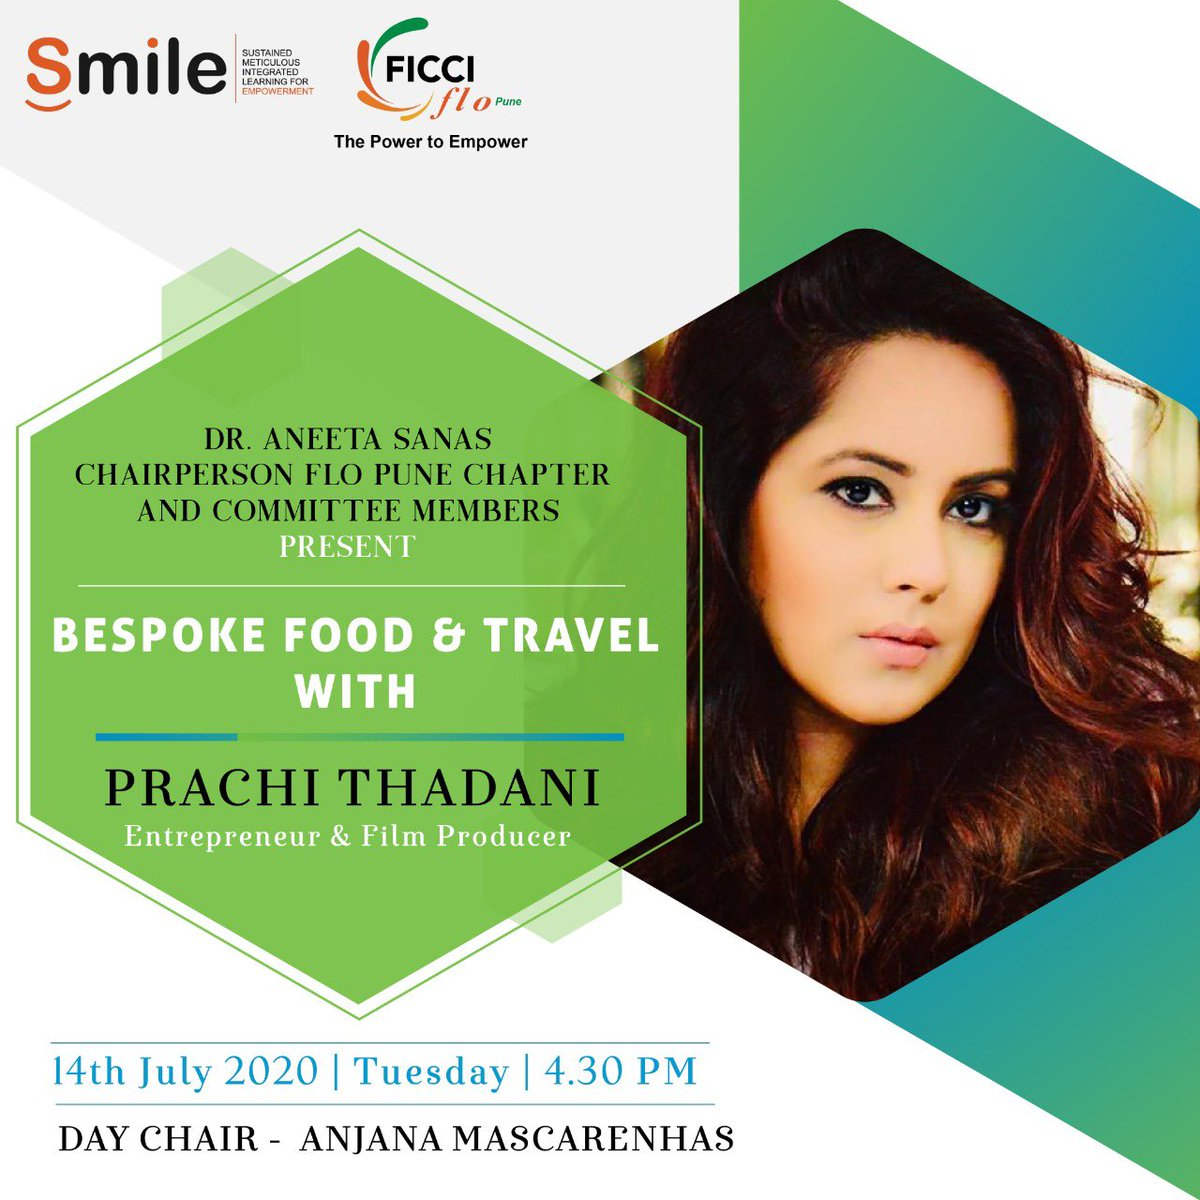 An #Entrepreneur & a #FilmProducer turned chef with her new venture of homemade food http://delivery-eat.play.love.food, #PrachiThadani will be in a LIVE conversation with us. Tune in on our Facebook page for this conversation tomorrow at 4.30 PM.  #ficci #ficciflo #ficciflopune #flopunepic.twitter.com/YHfCLlP93b